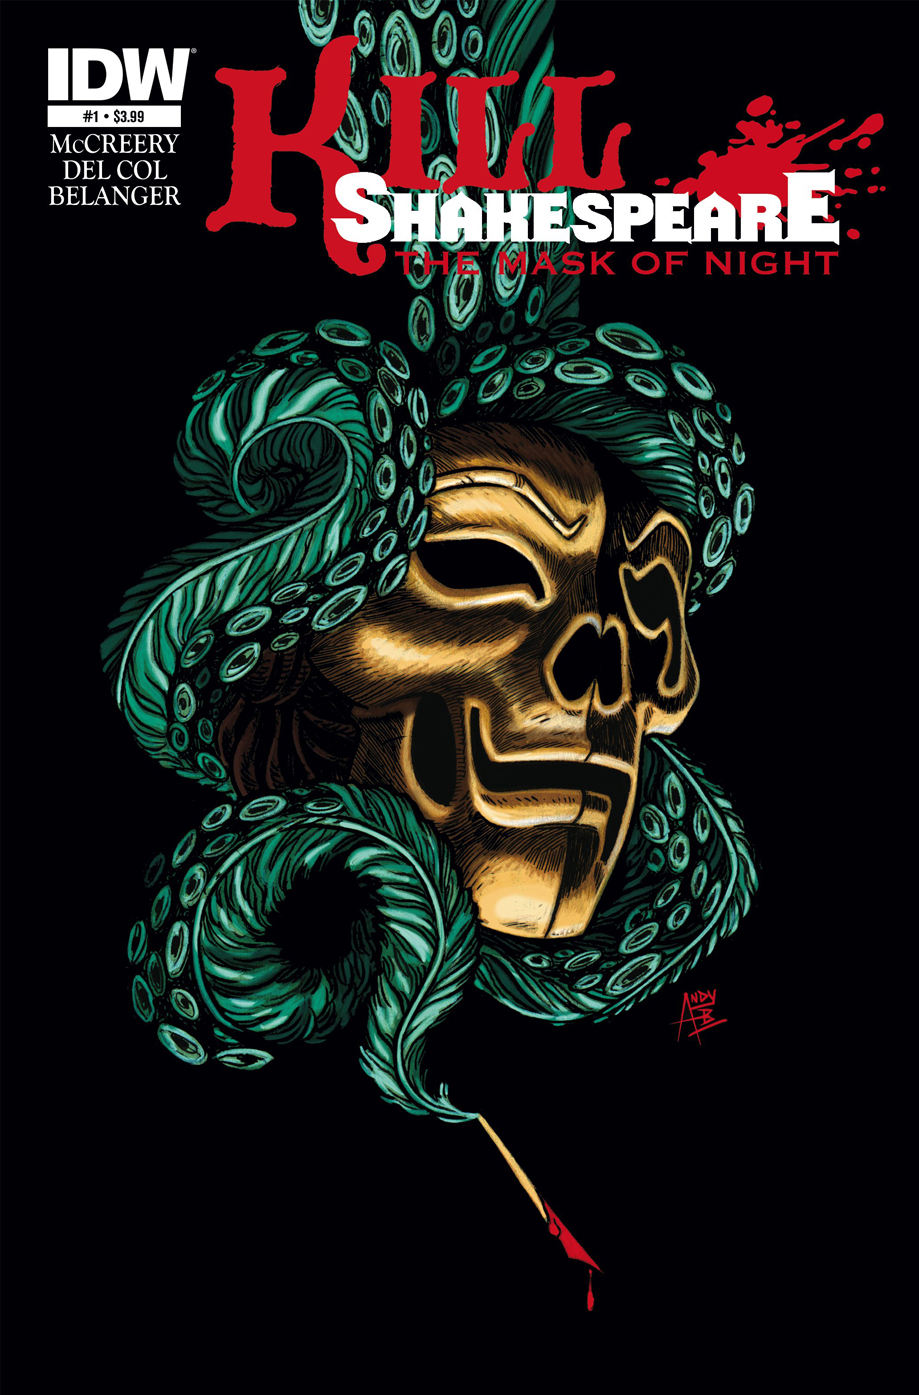 IDW lancia Kill Shakespeare: The Mask of Night_Notizie